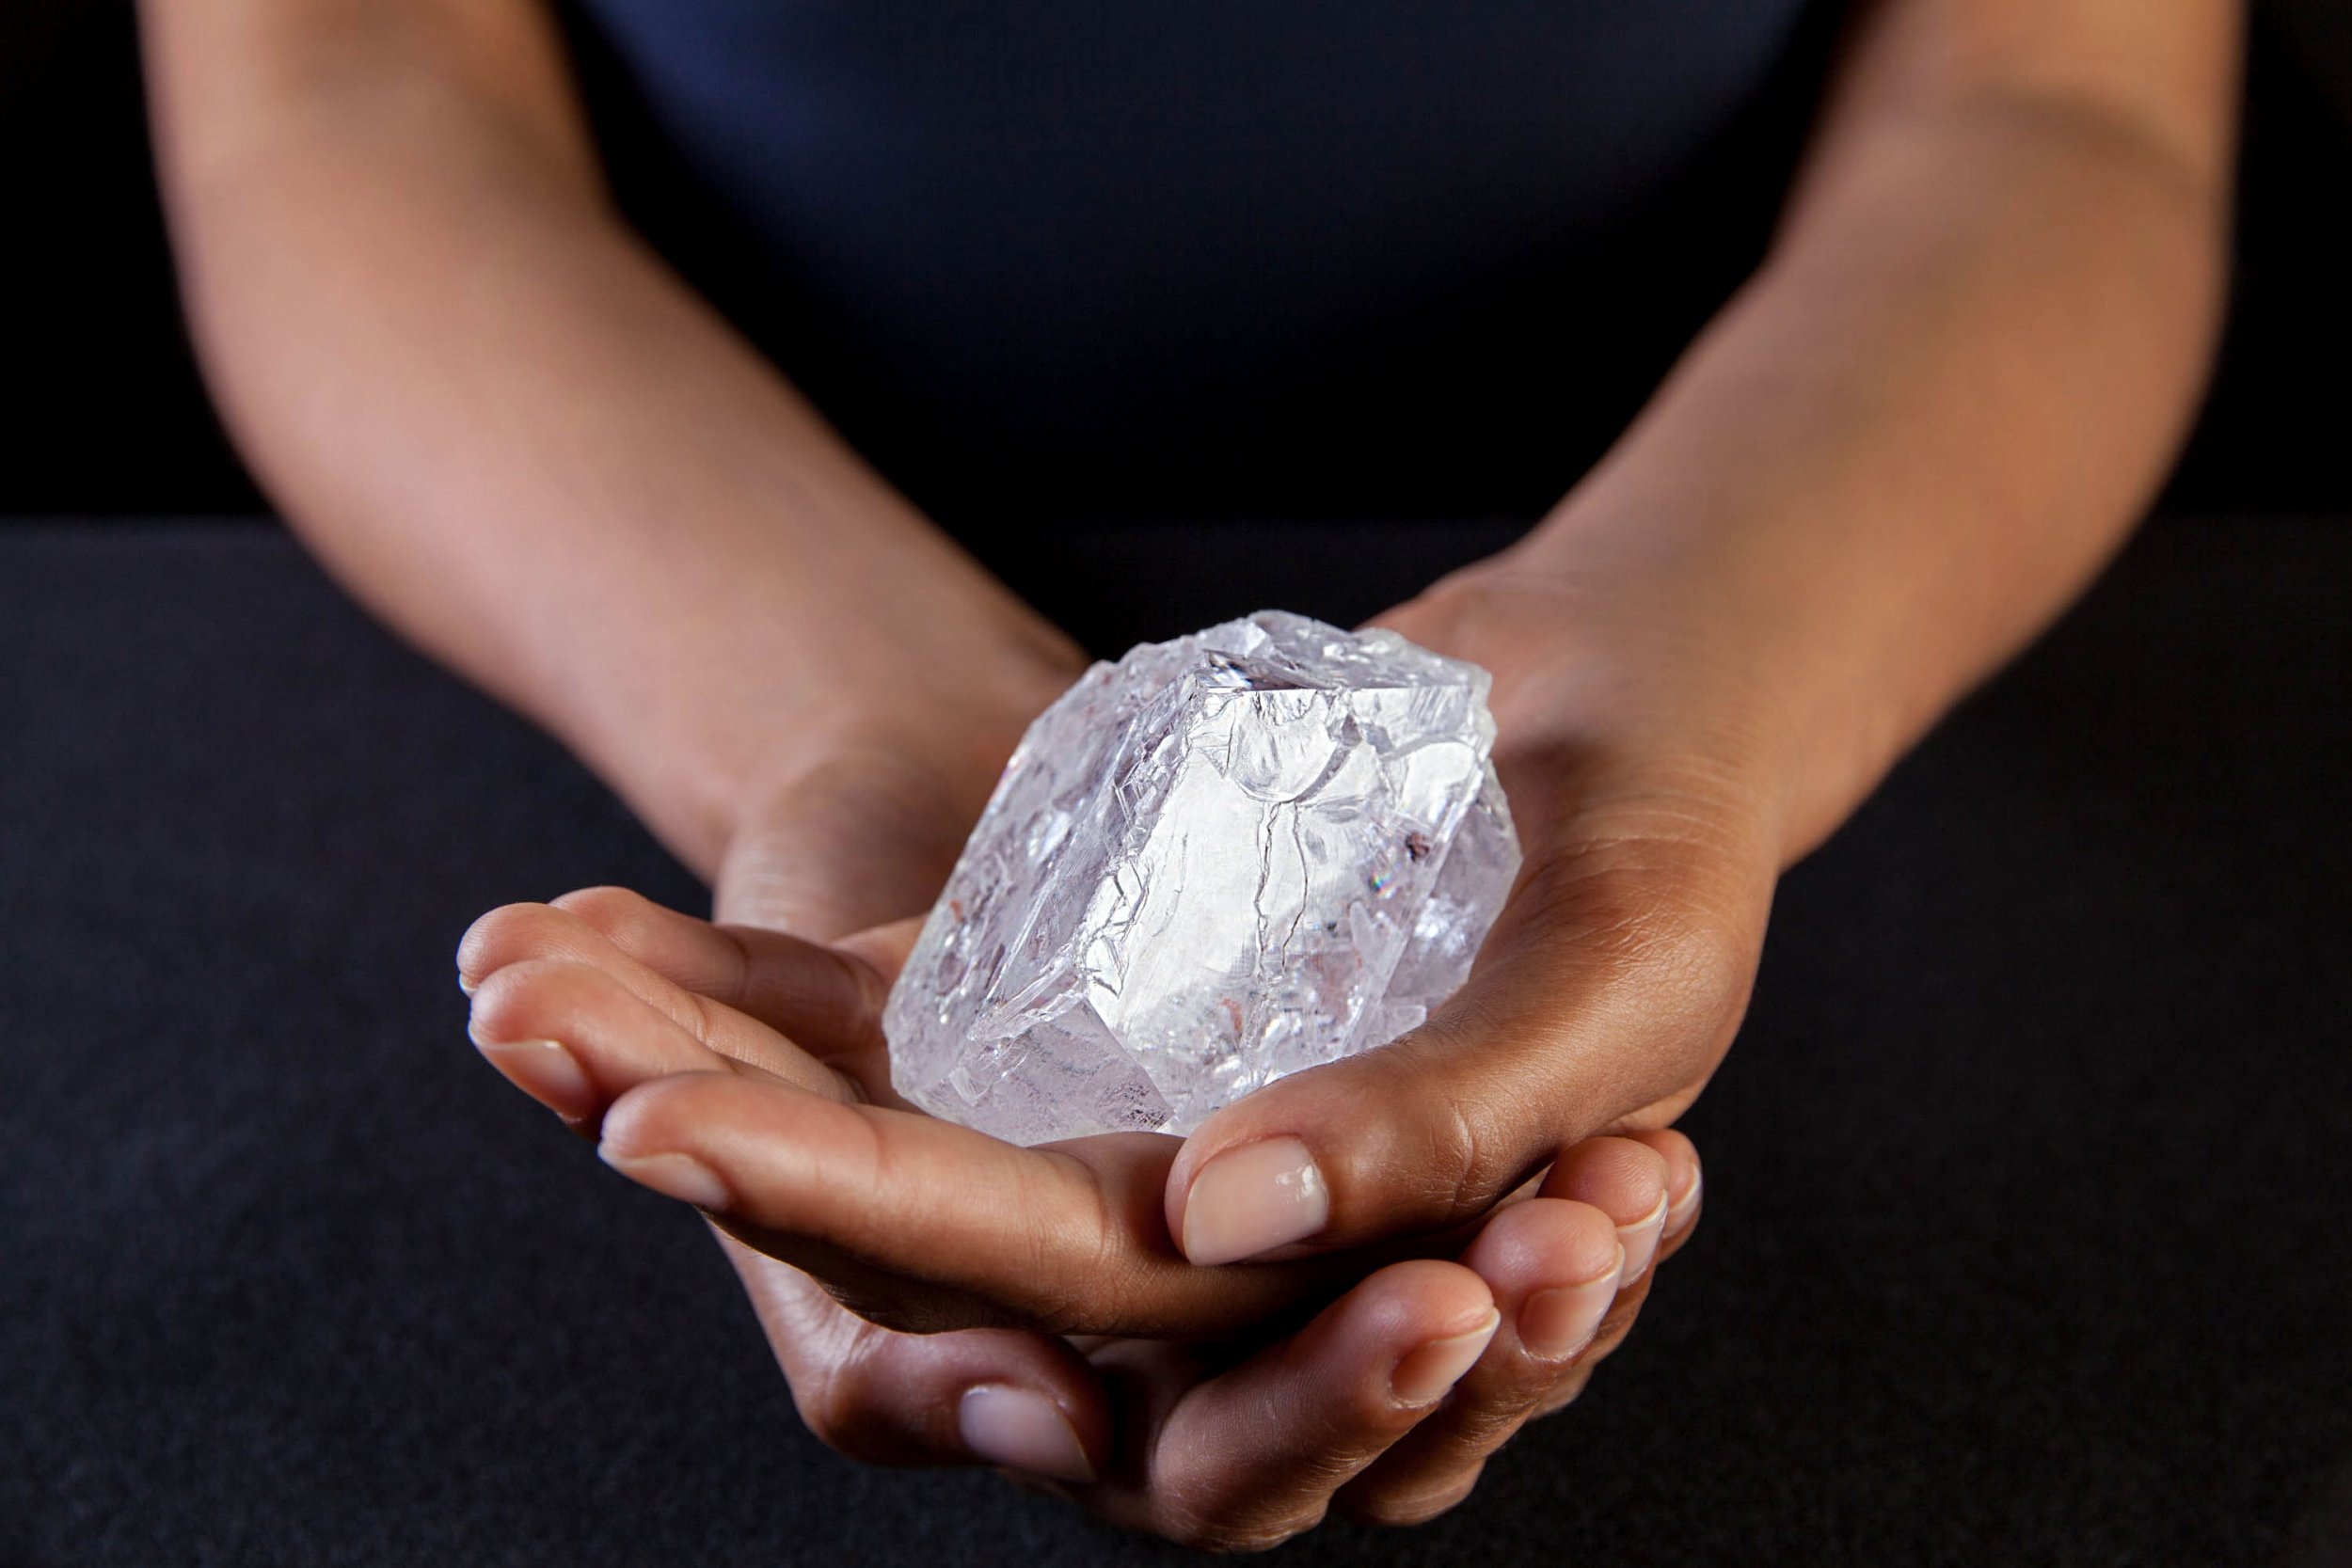 A Sotherby's employee holds Lesedi La Rona Diamond on May Tuesday 3, 2016 in New York City. The diamond the size of a tennis ball that is the largest discovered in more than a century could sell at auction for more than $70 million. Sotheby's says it will offer the Lesedi la Rona diamond in London on June 29. (Donald Bowers/Getty Images for Sotheby's, via AP)